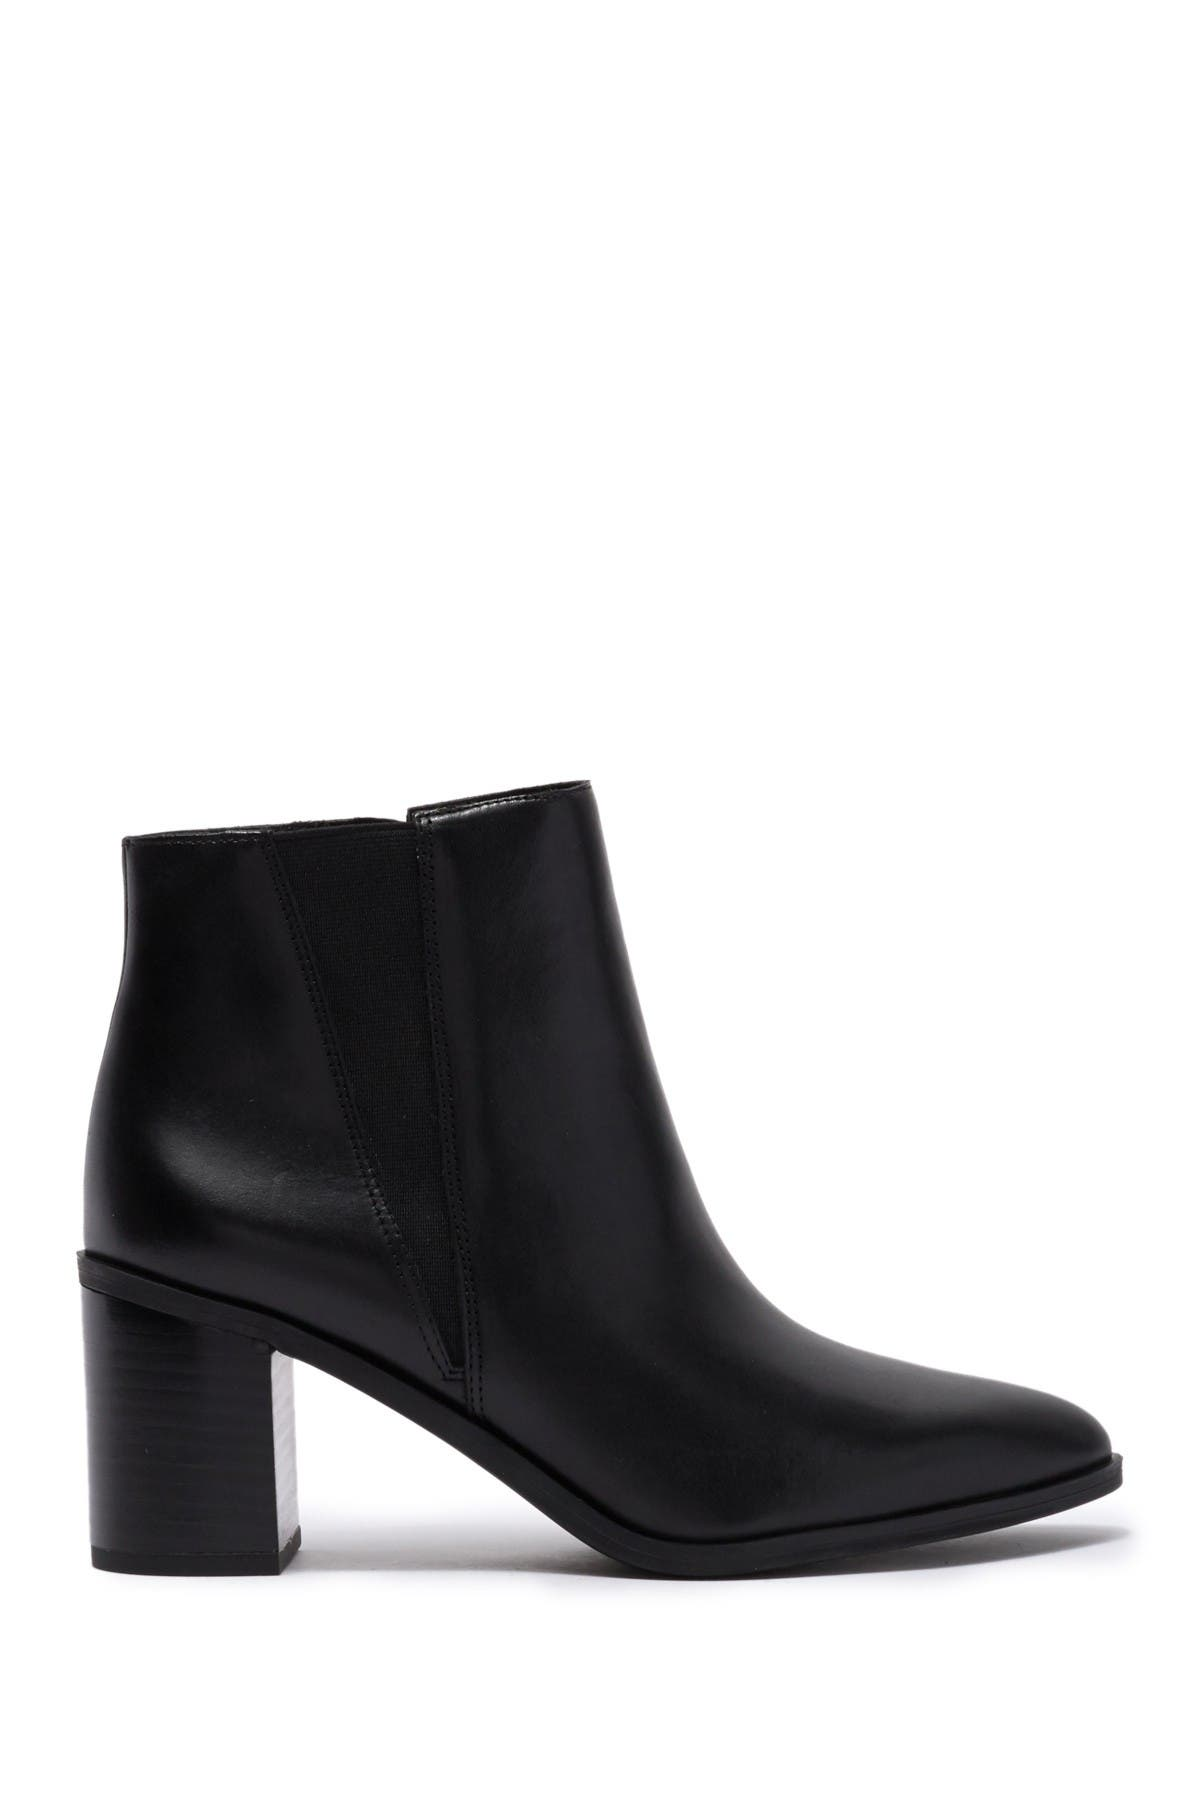 Franco Sarto   Bette 2 Leather Ankle